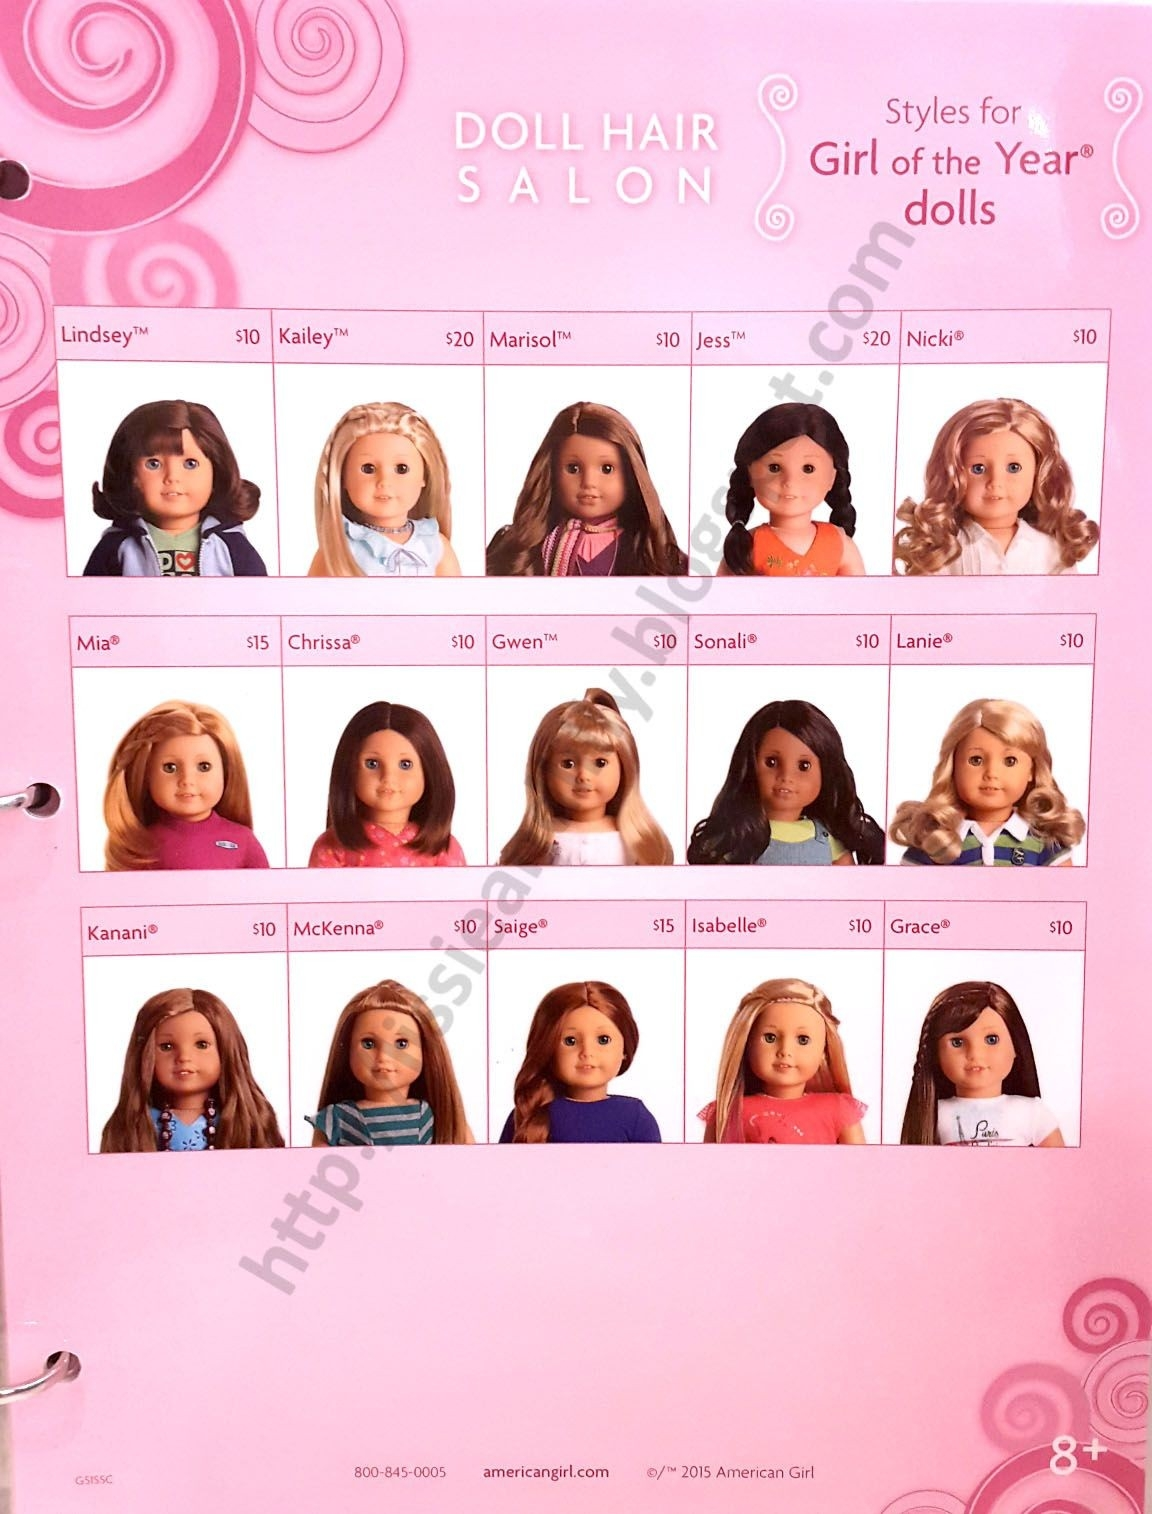 American Girl Of The Year List - Google Search | American Girl Doll throughout American Girl Doll Of The Year List 36770